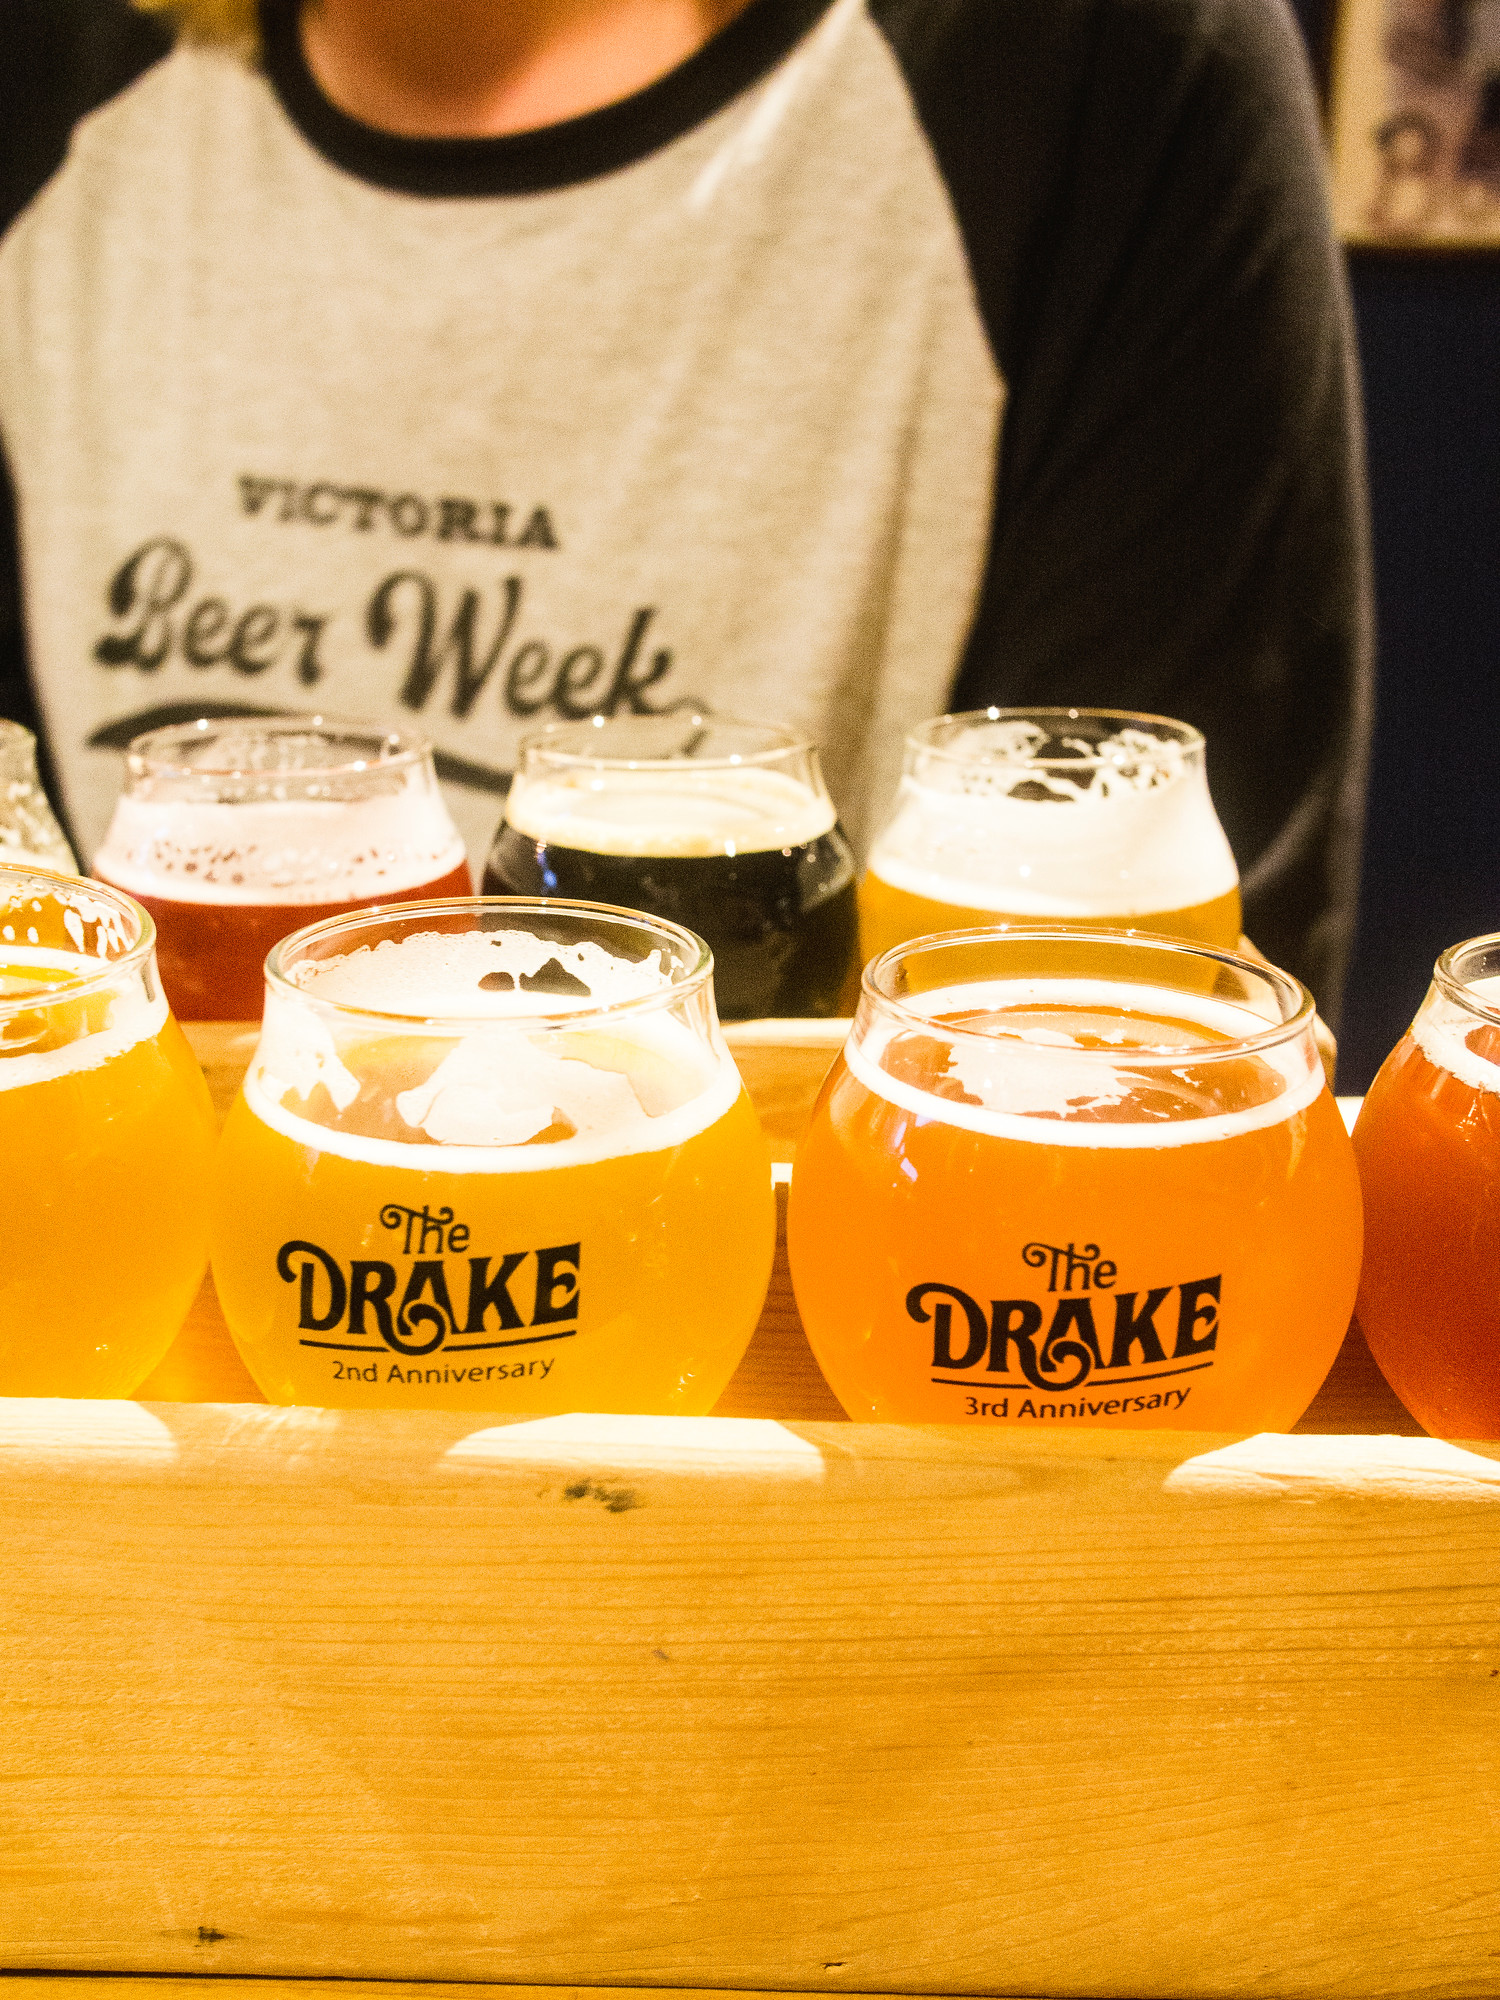 The Drake Eatery is one of the best spots for Victoria craft beer, check out where else to grab a pint.